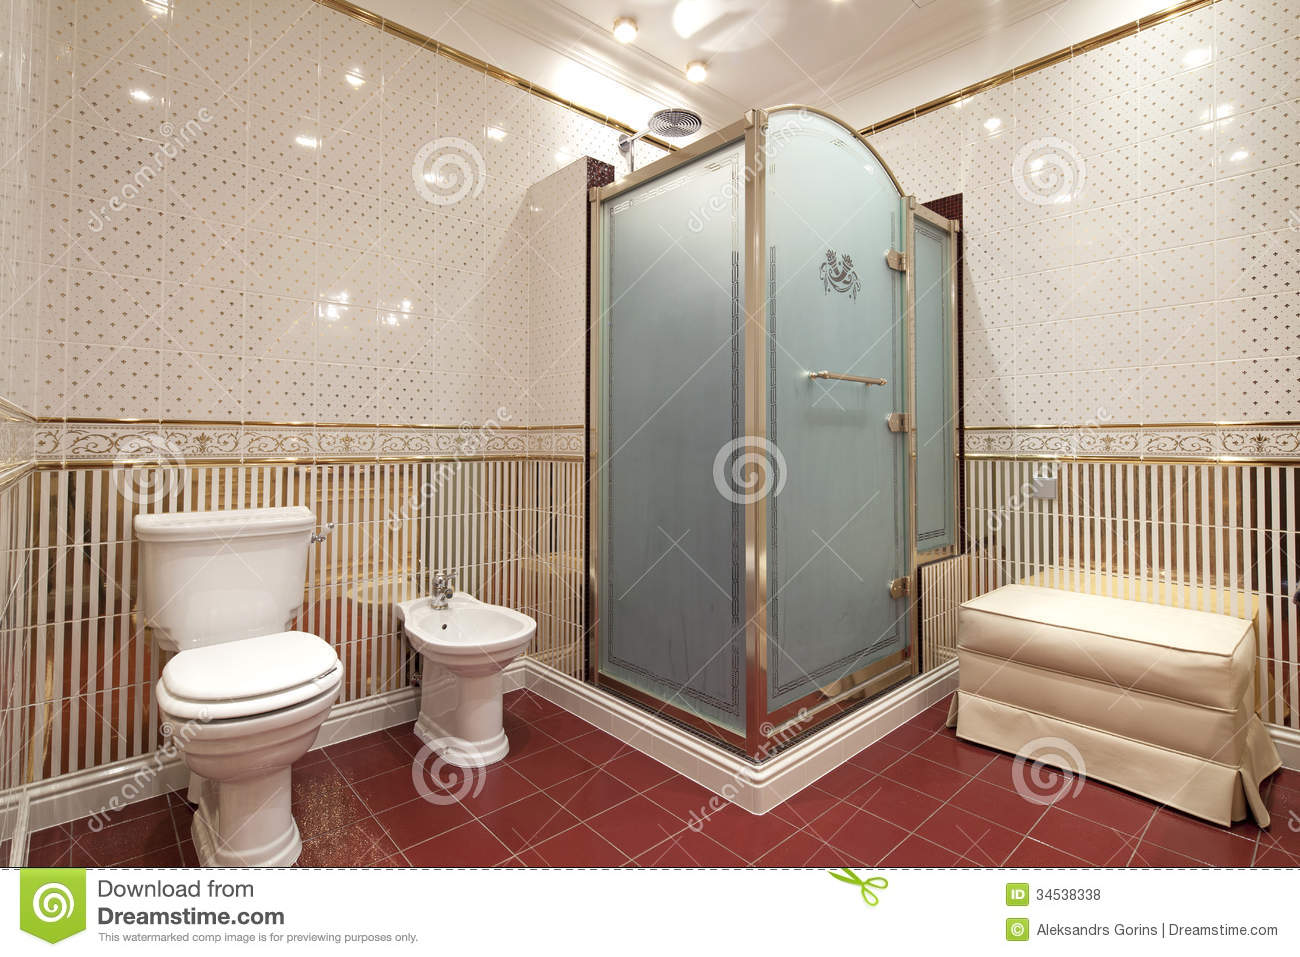 Bathroom stock photo image of real mirrors sink glass for New washroom designs